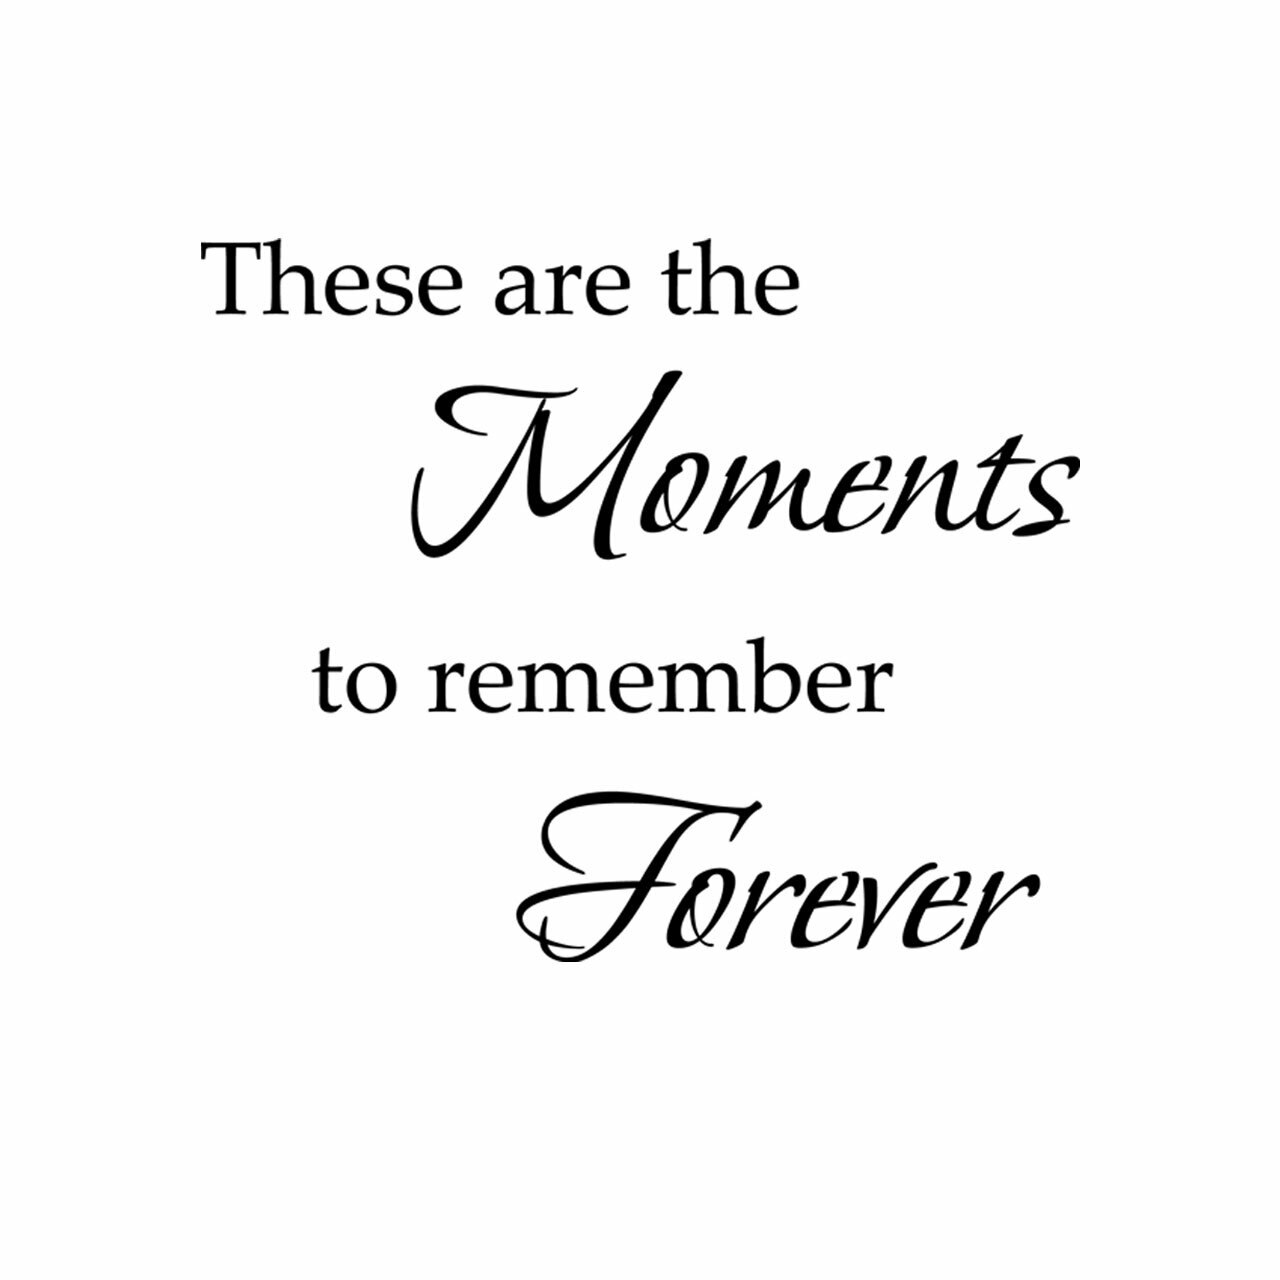 These are the moments to remember vinyl lettering layout in black on a white background